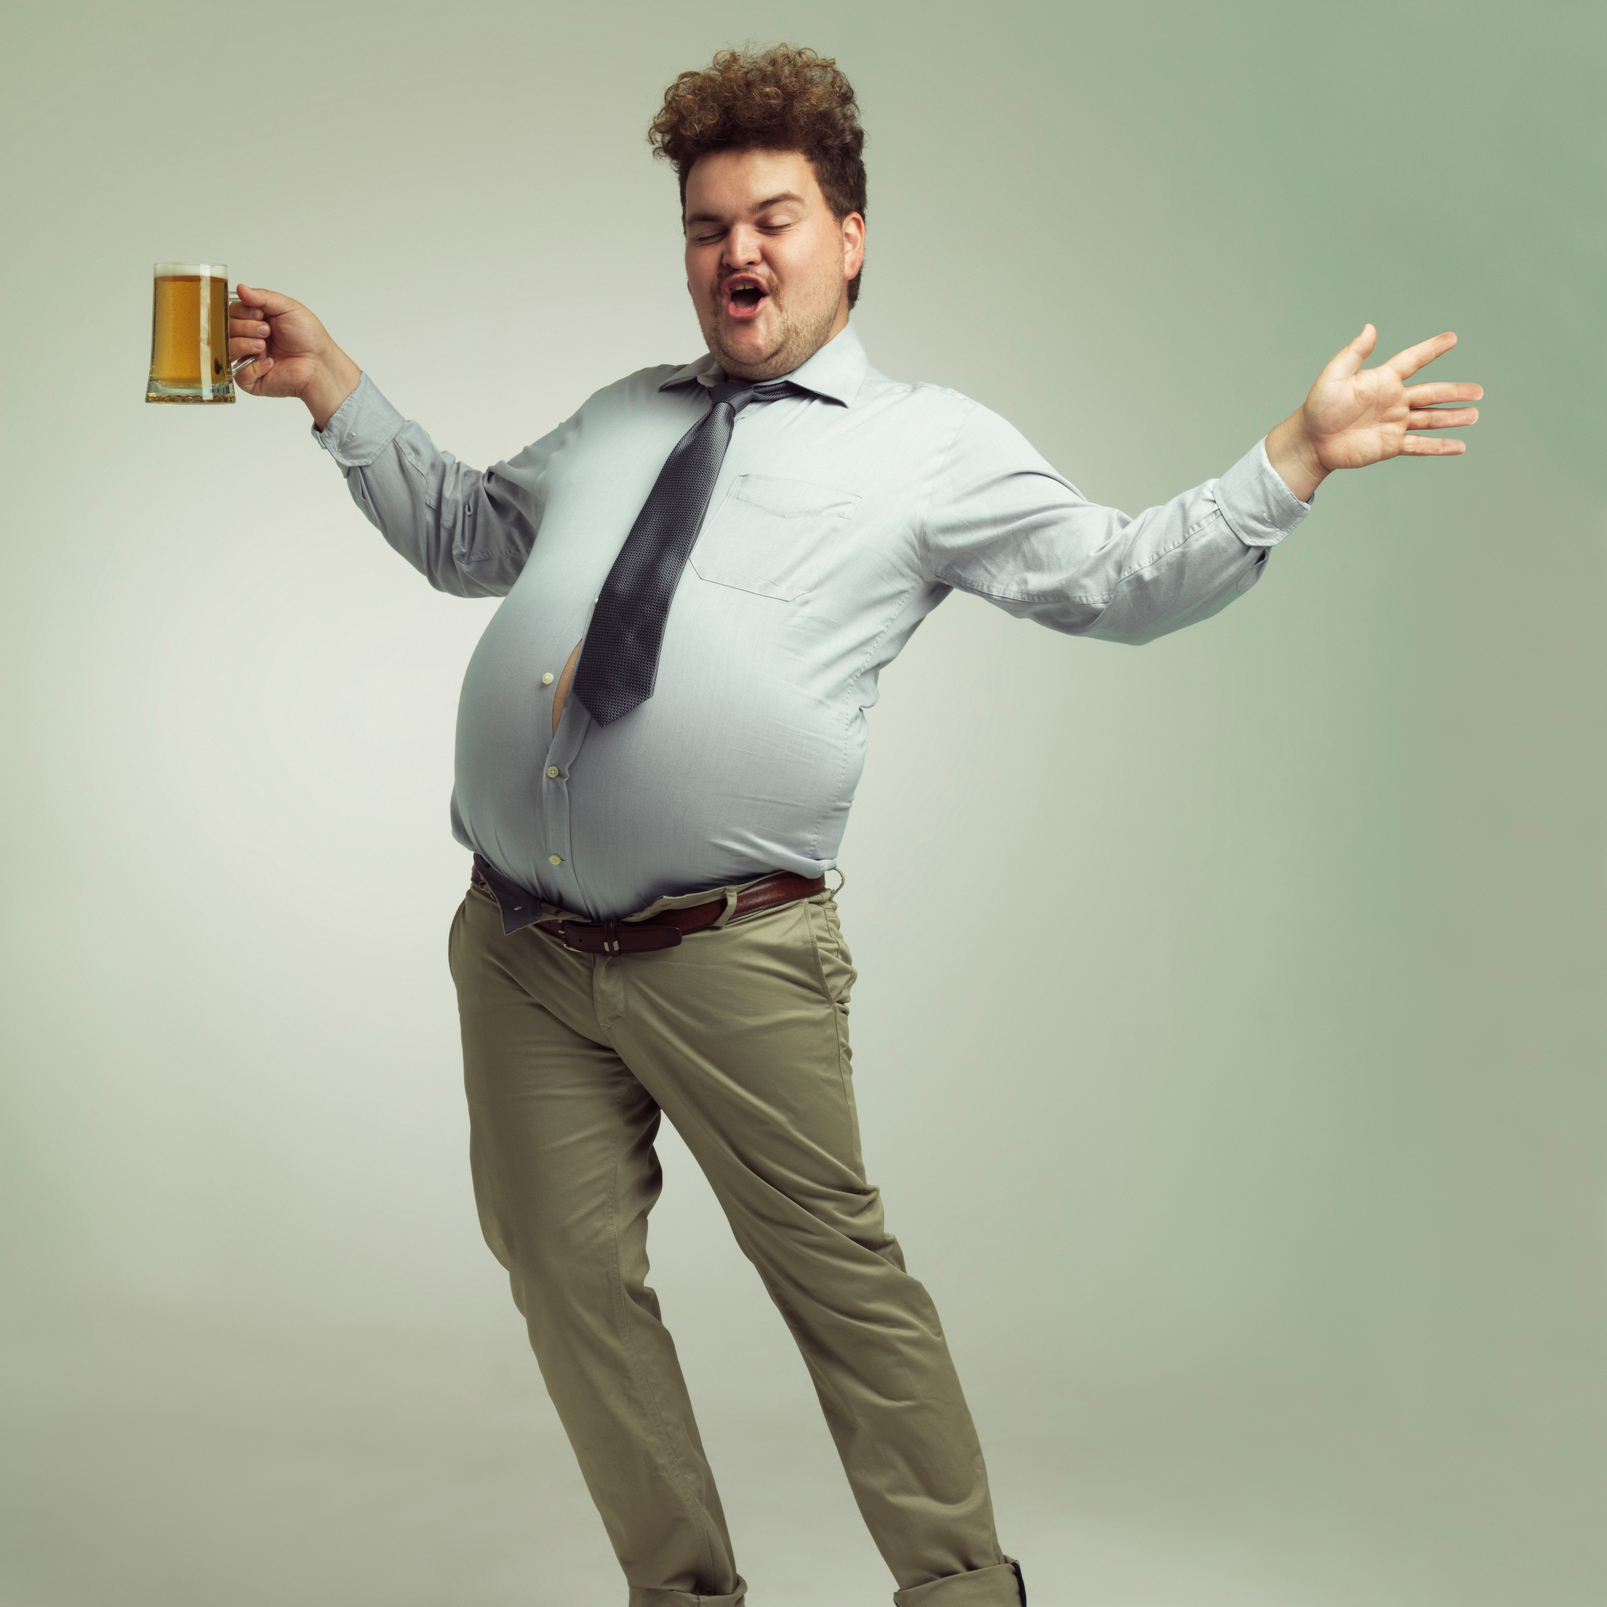 drunk-guy-party-fwx